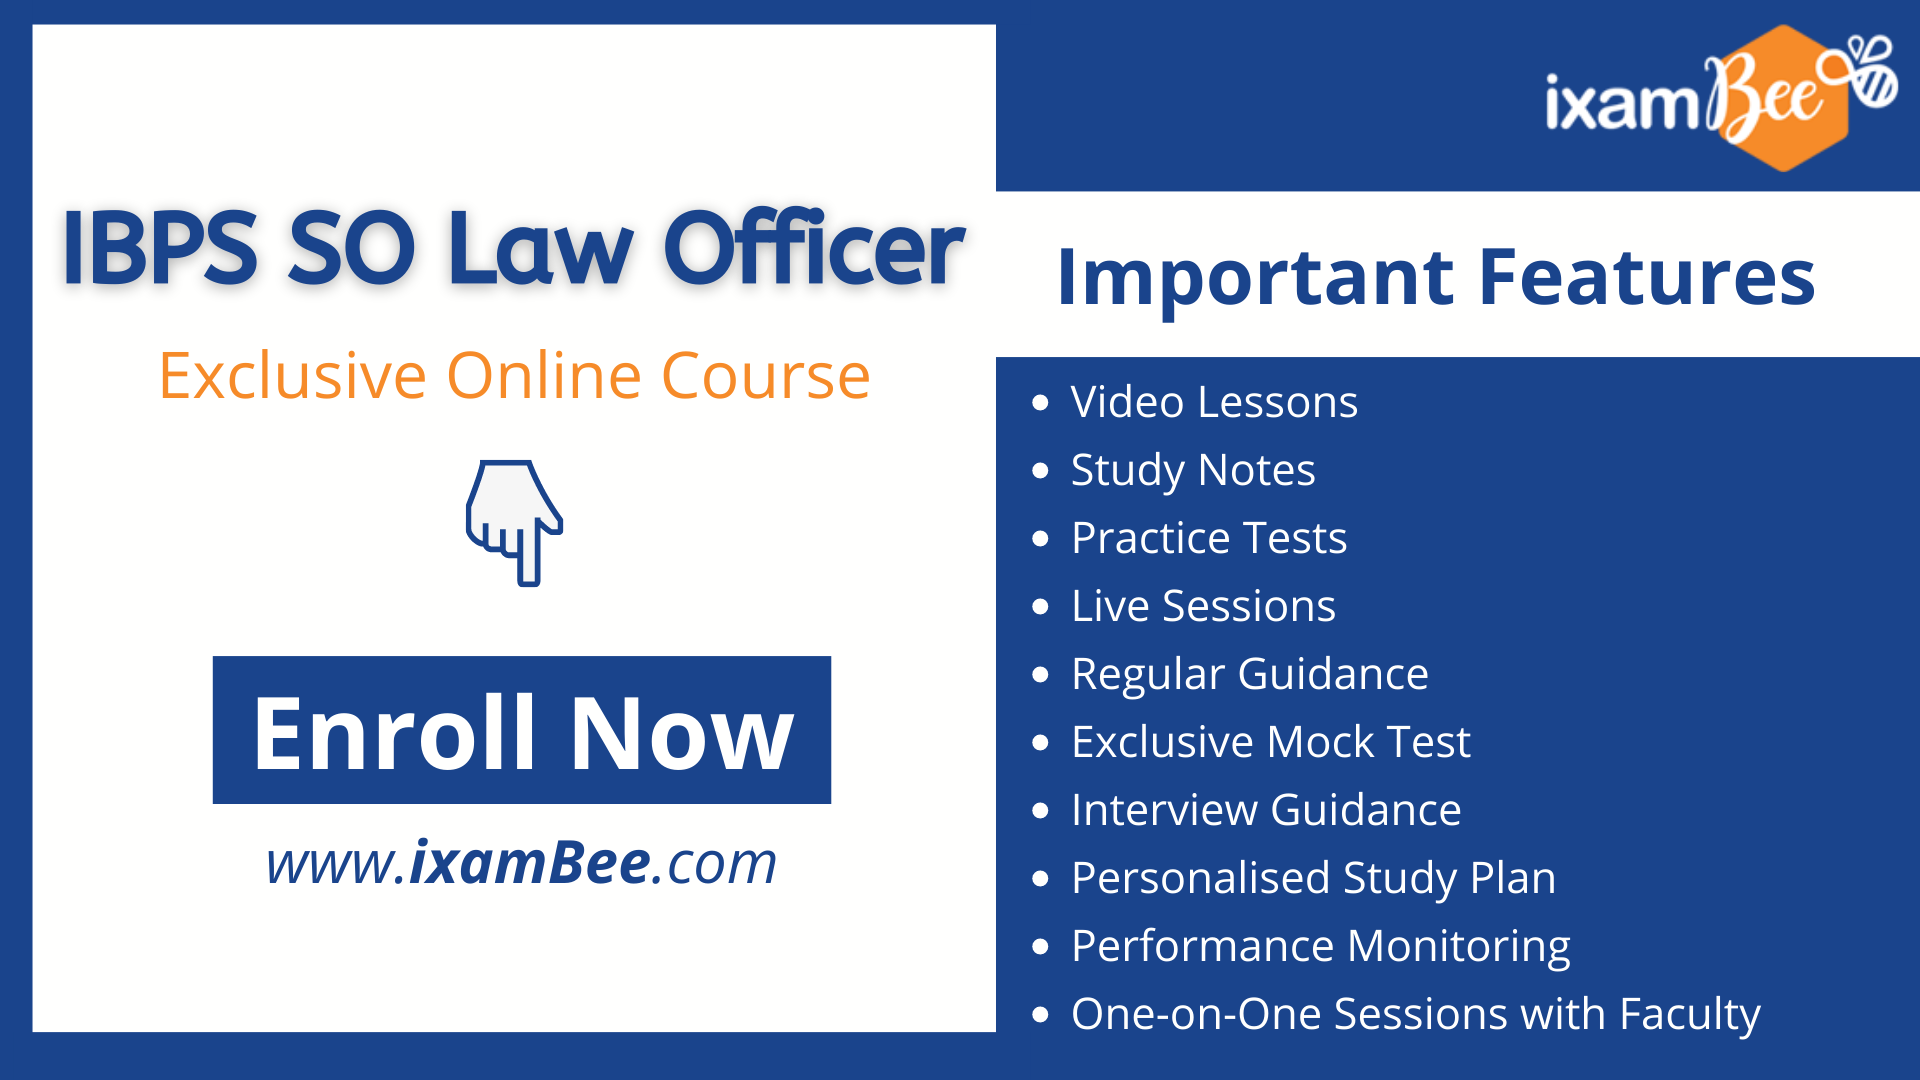 IBPS SO LAW officer online course page